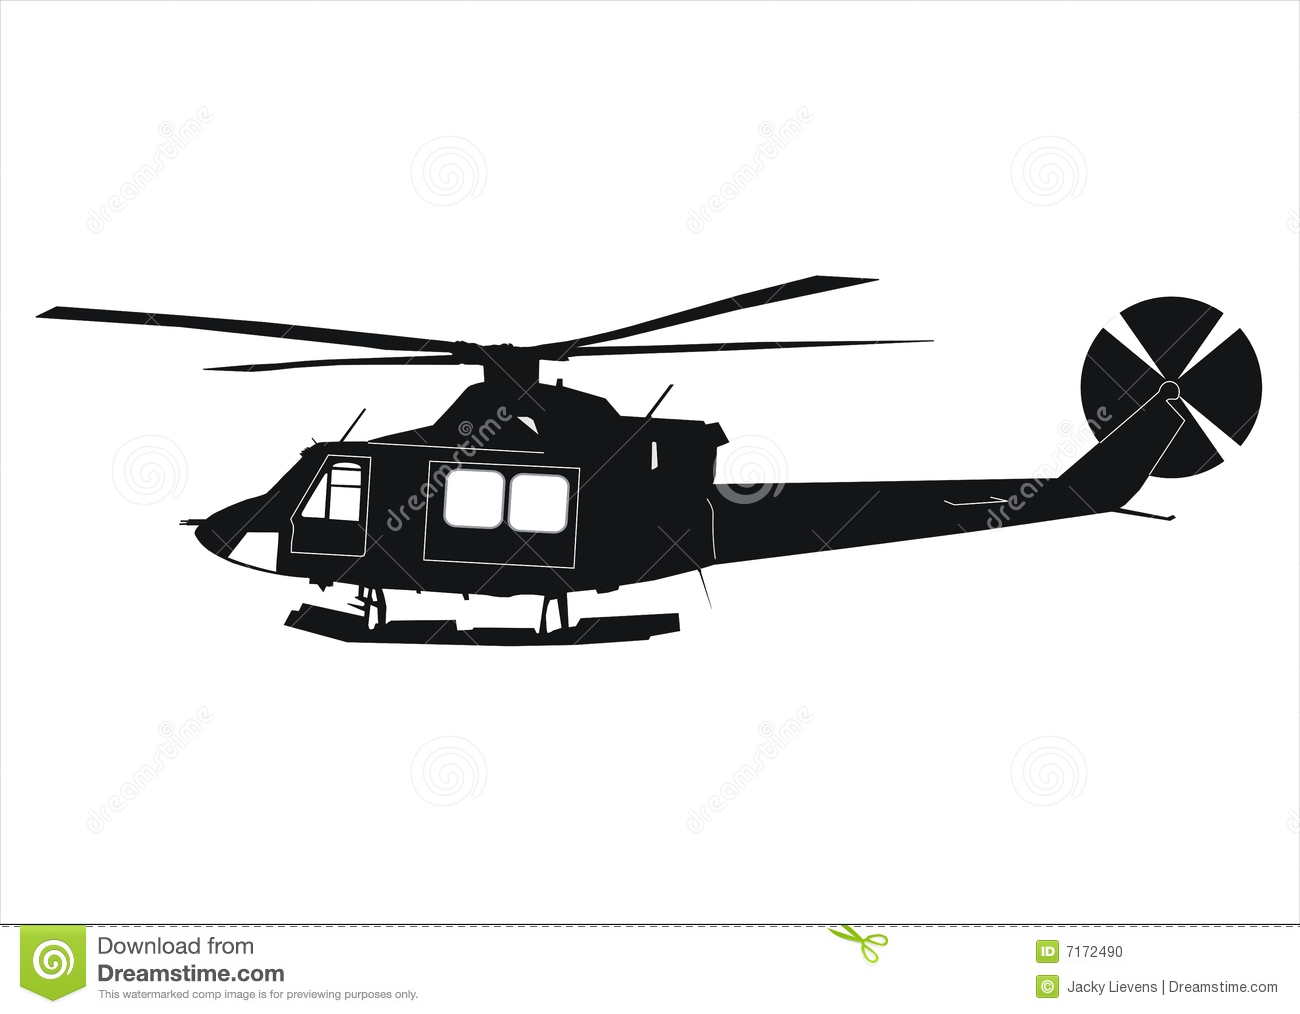 draw a police helicopter with Foto De Archivo Helic C3 B3ptero Bell 412 Image7172490 on Helicoptero Bell 412 as well 1747361 also Foto De Archivo Helic C3 B3ptero Bell 412 Image7172490 in addition 4226 furthermore Robocar Poli Coloring Pages.